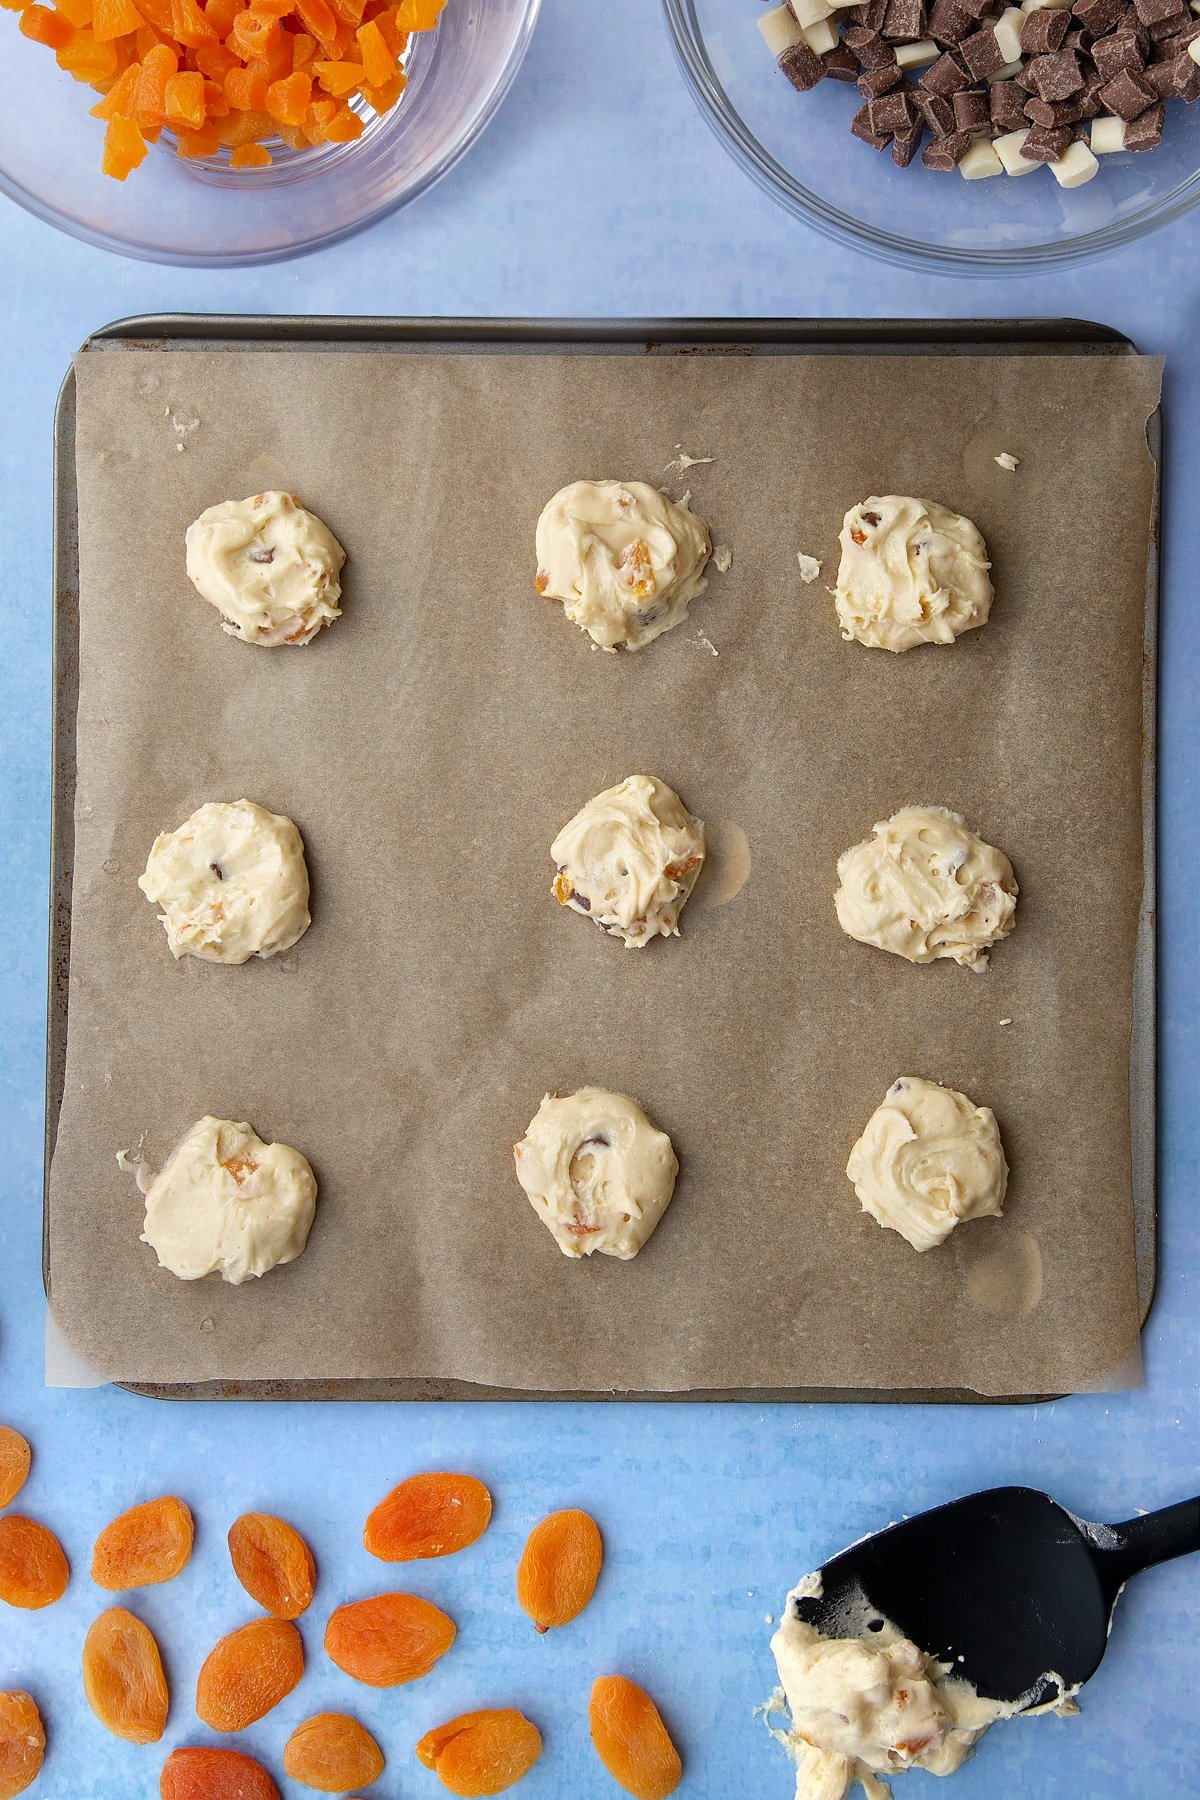 Chocolate and apricot cookie dough blobs on a tray lined with baking paper. Ingredients to make apricot chocolate chip cookies surround the tray.